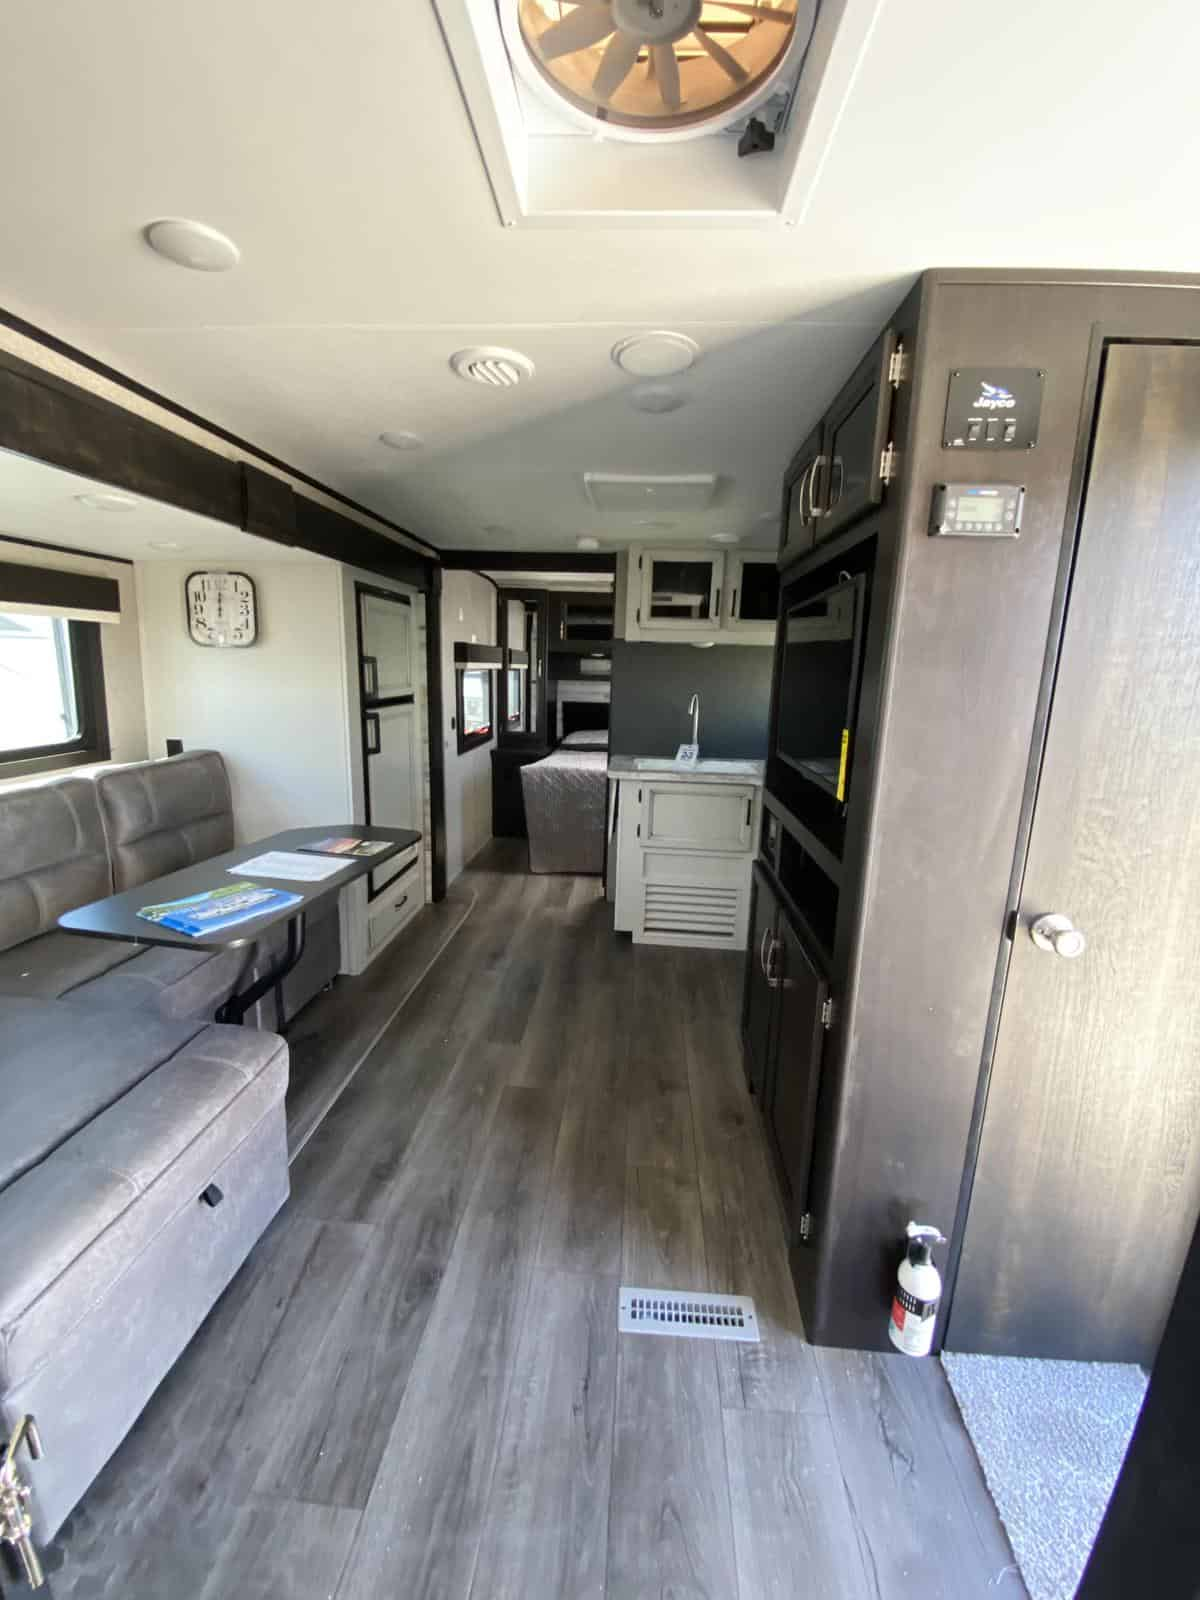 2021 Chaparral 23 Surf for Sale in Grand Junction, CO